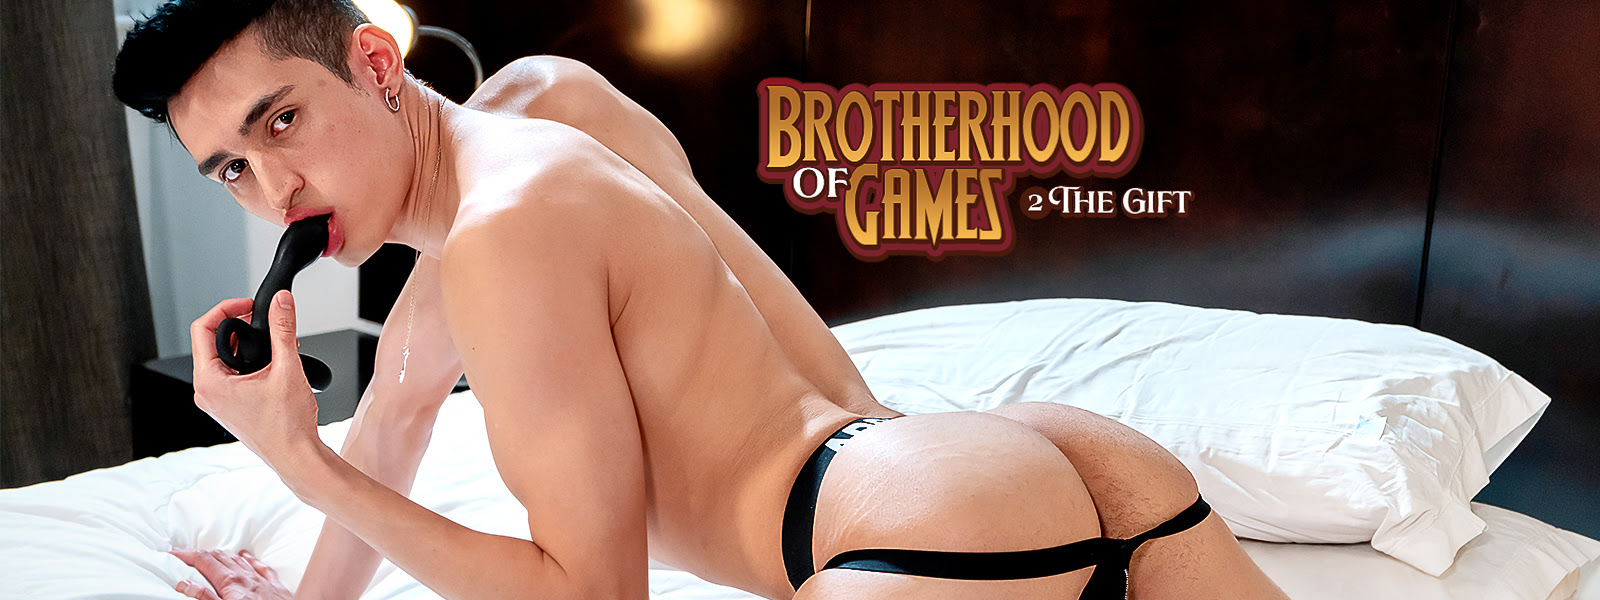 Brotherhood of Games | Ch. 2 The Gift